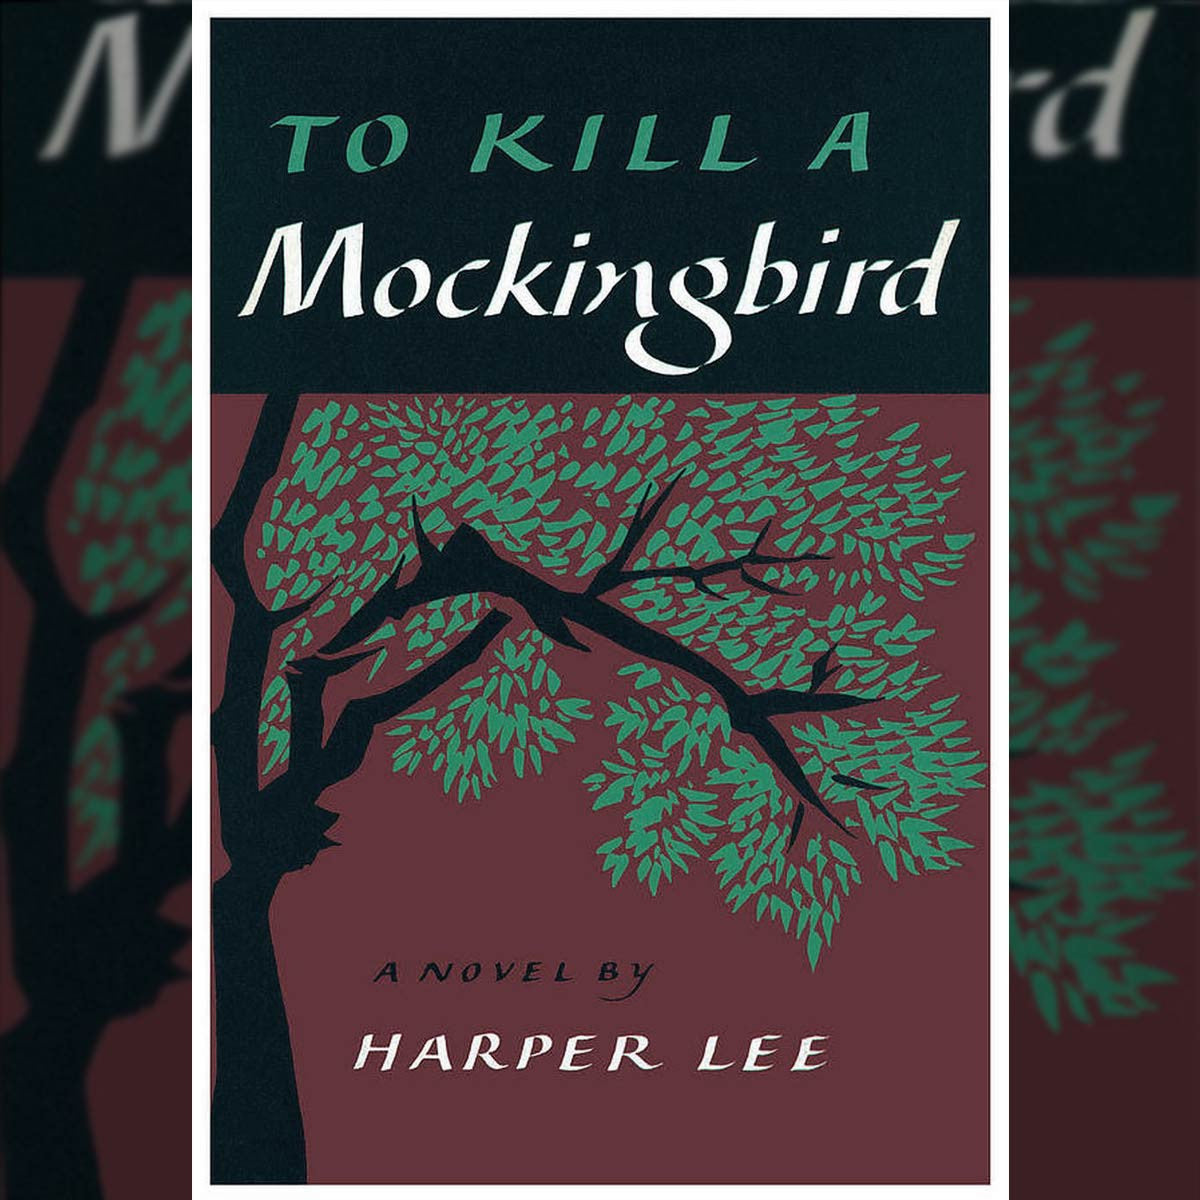 to kill a mockingbird book report video To kill a mockingbird [renine osteen] on amazoncom free shipping on qualifying offers to kill a mockingbird is poem book that compiles the best works by the writer to make a compelling argument for why some things can change and how in a way we are our own enemies so enjoy the riddles.